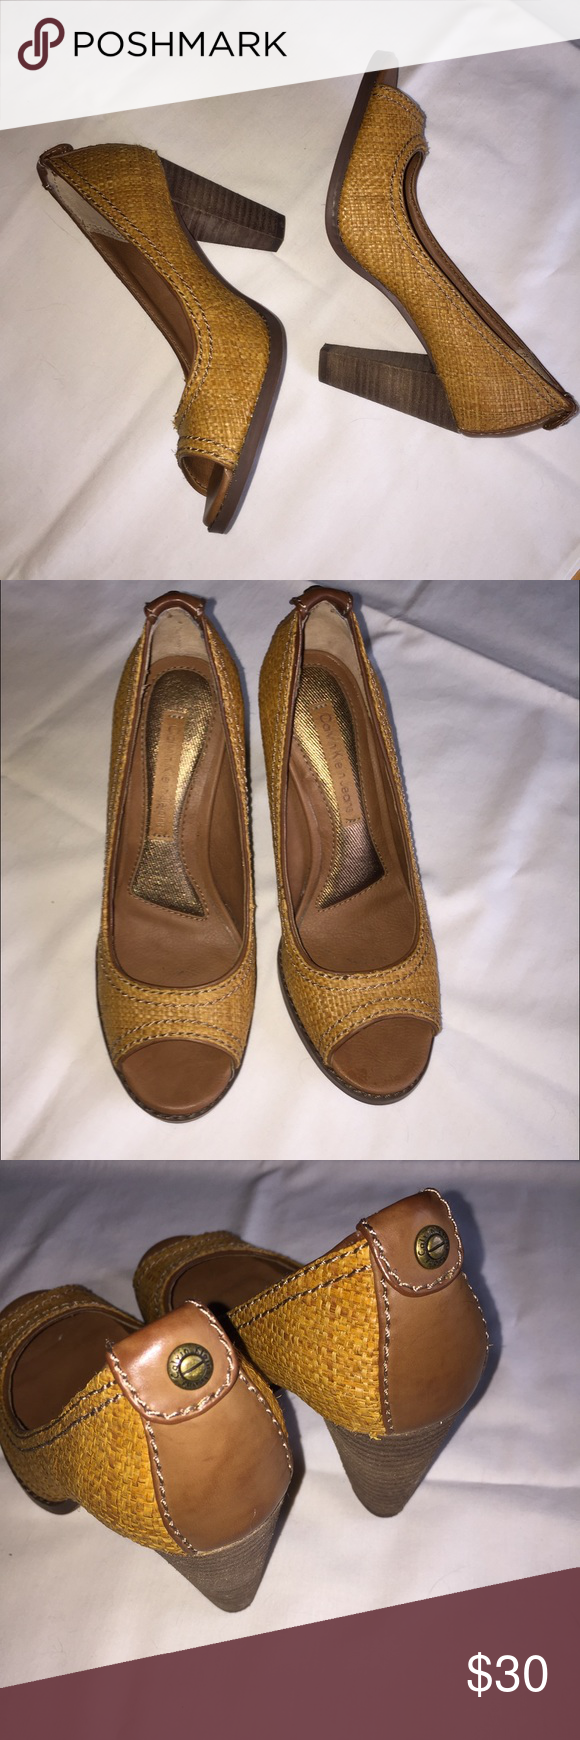 Calvin Klein HOBO heels These are very comfortable. They have extra padding inside the heel. I never wore them. They have a wicker look. I selected tan and brown for the colors. The shoes kind a have a mustard yellow look. They look great with denim jeans Calvin Klein Shoes Heels